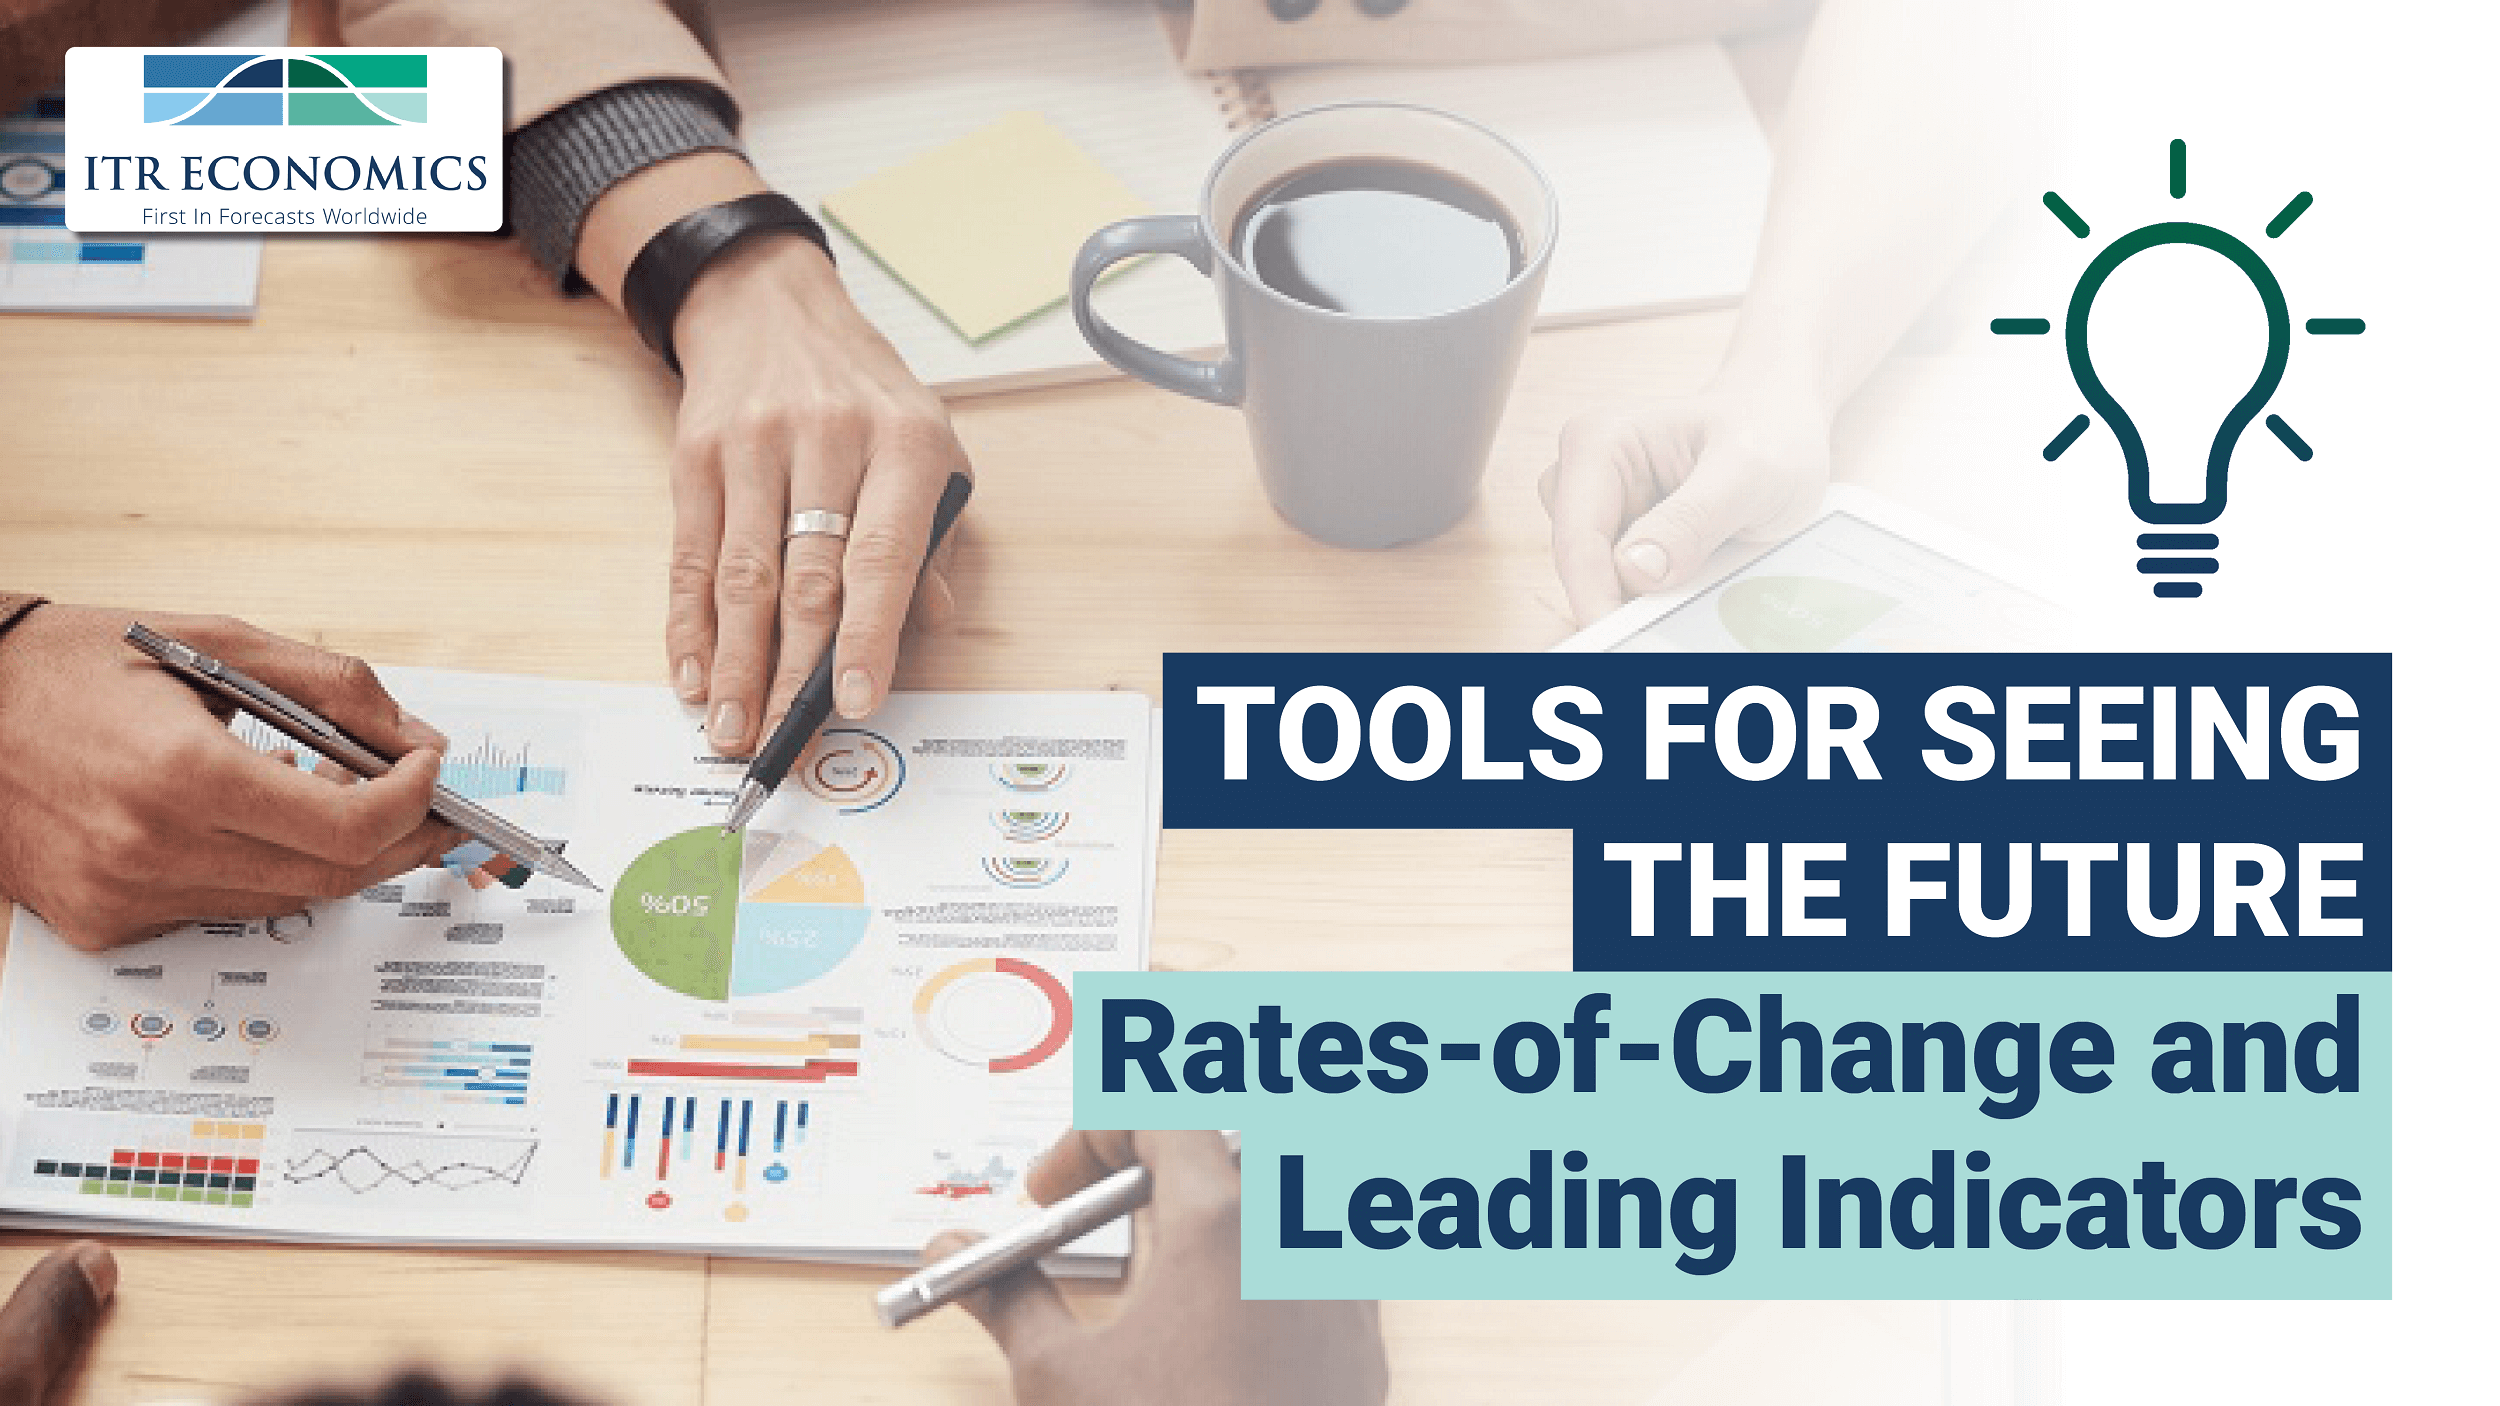 Rates-of-Change and Leading Indicators